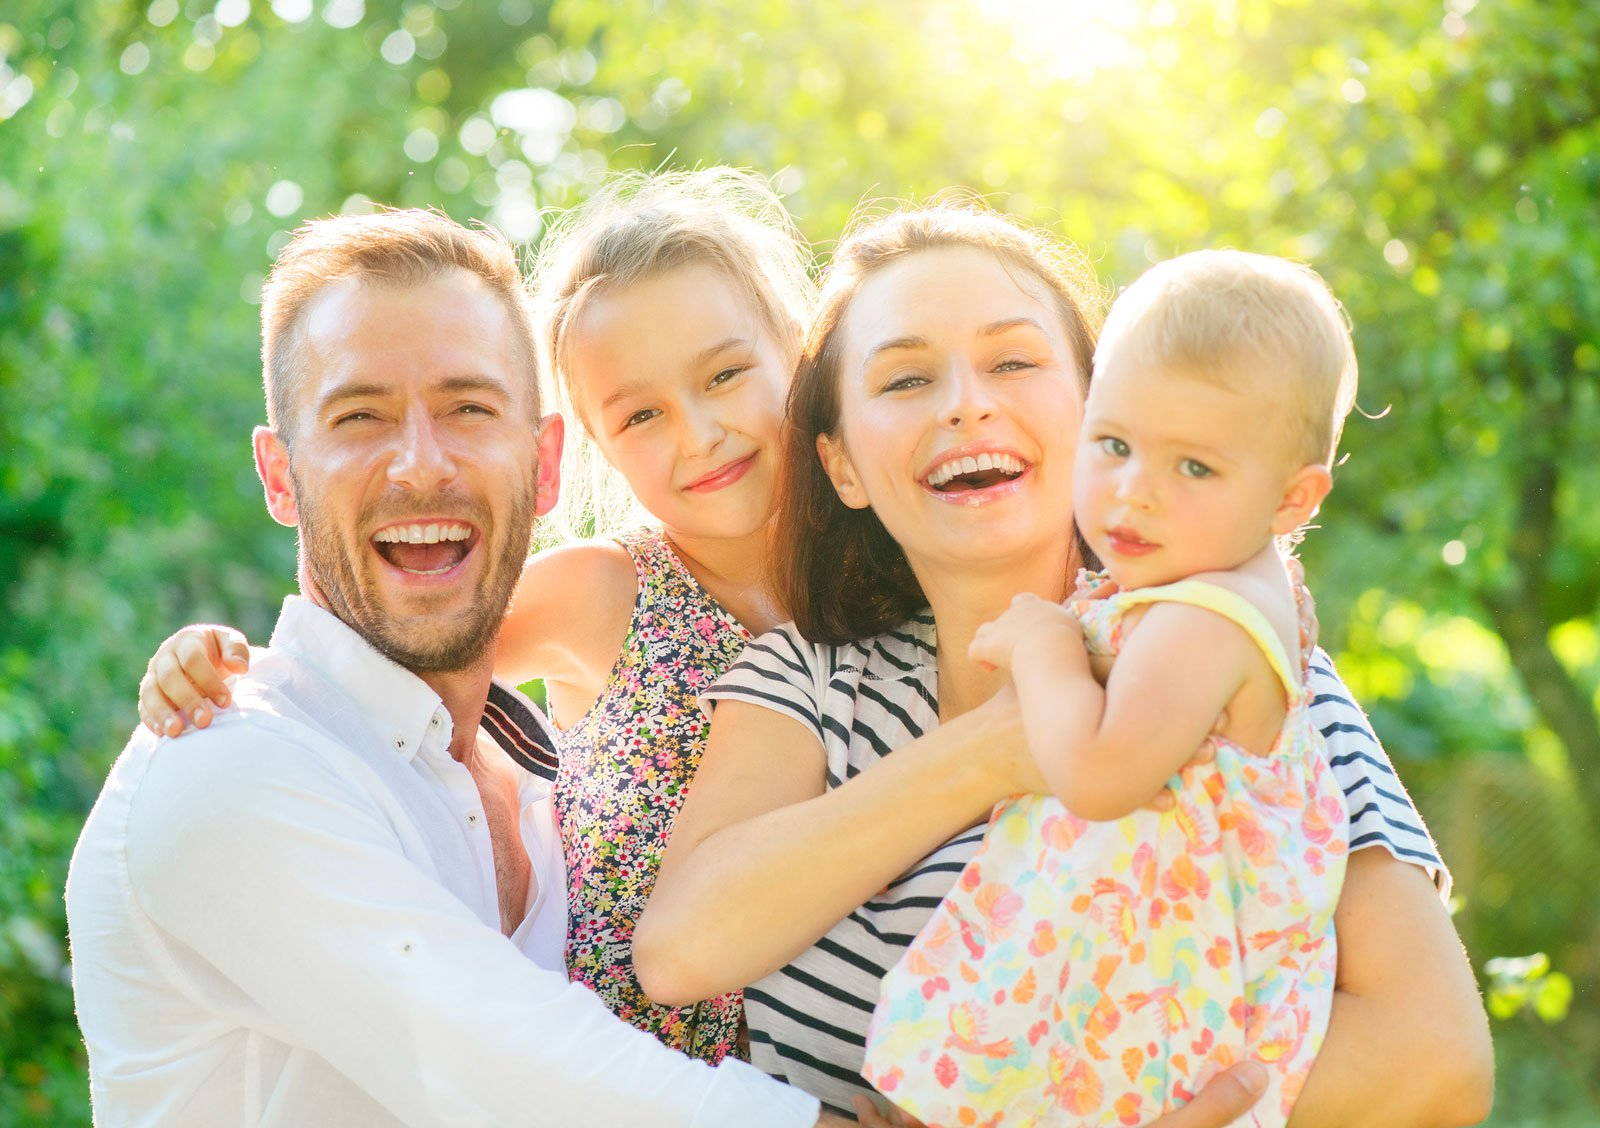 Family Life Insurance with Bialke Insurance